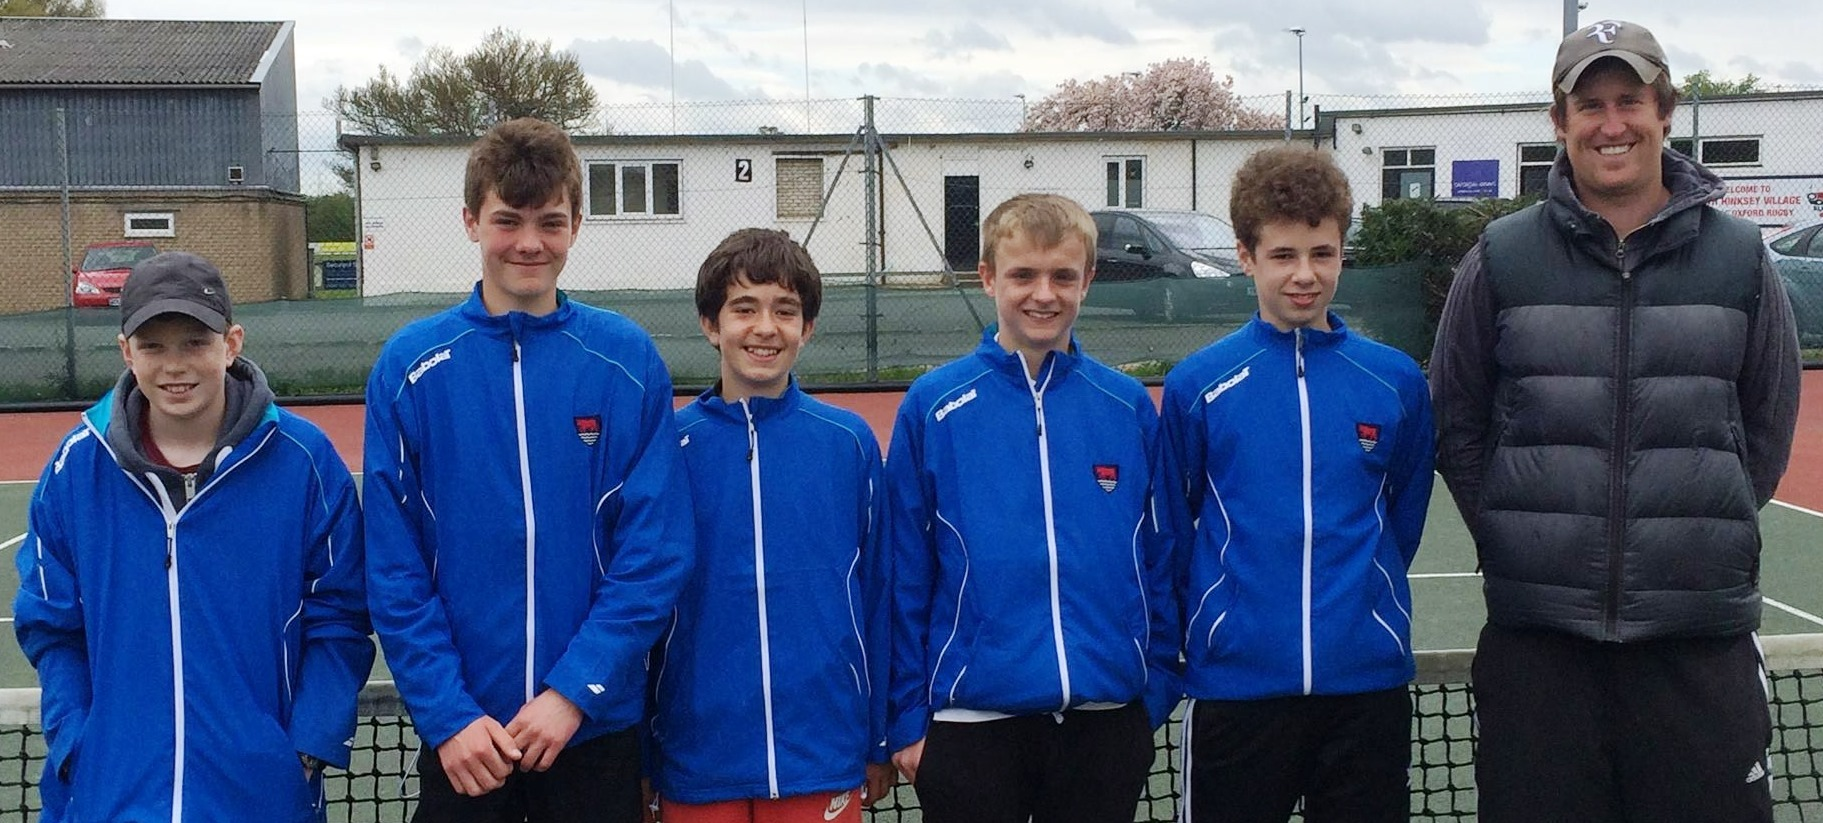 Oxfordshire's under 14 boys. From left: Will Taylor, Ollie Broadhurst, Gabriel Curreli, George Slater, Connor Ferguson and Dave Tuck (captain)